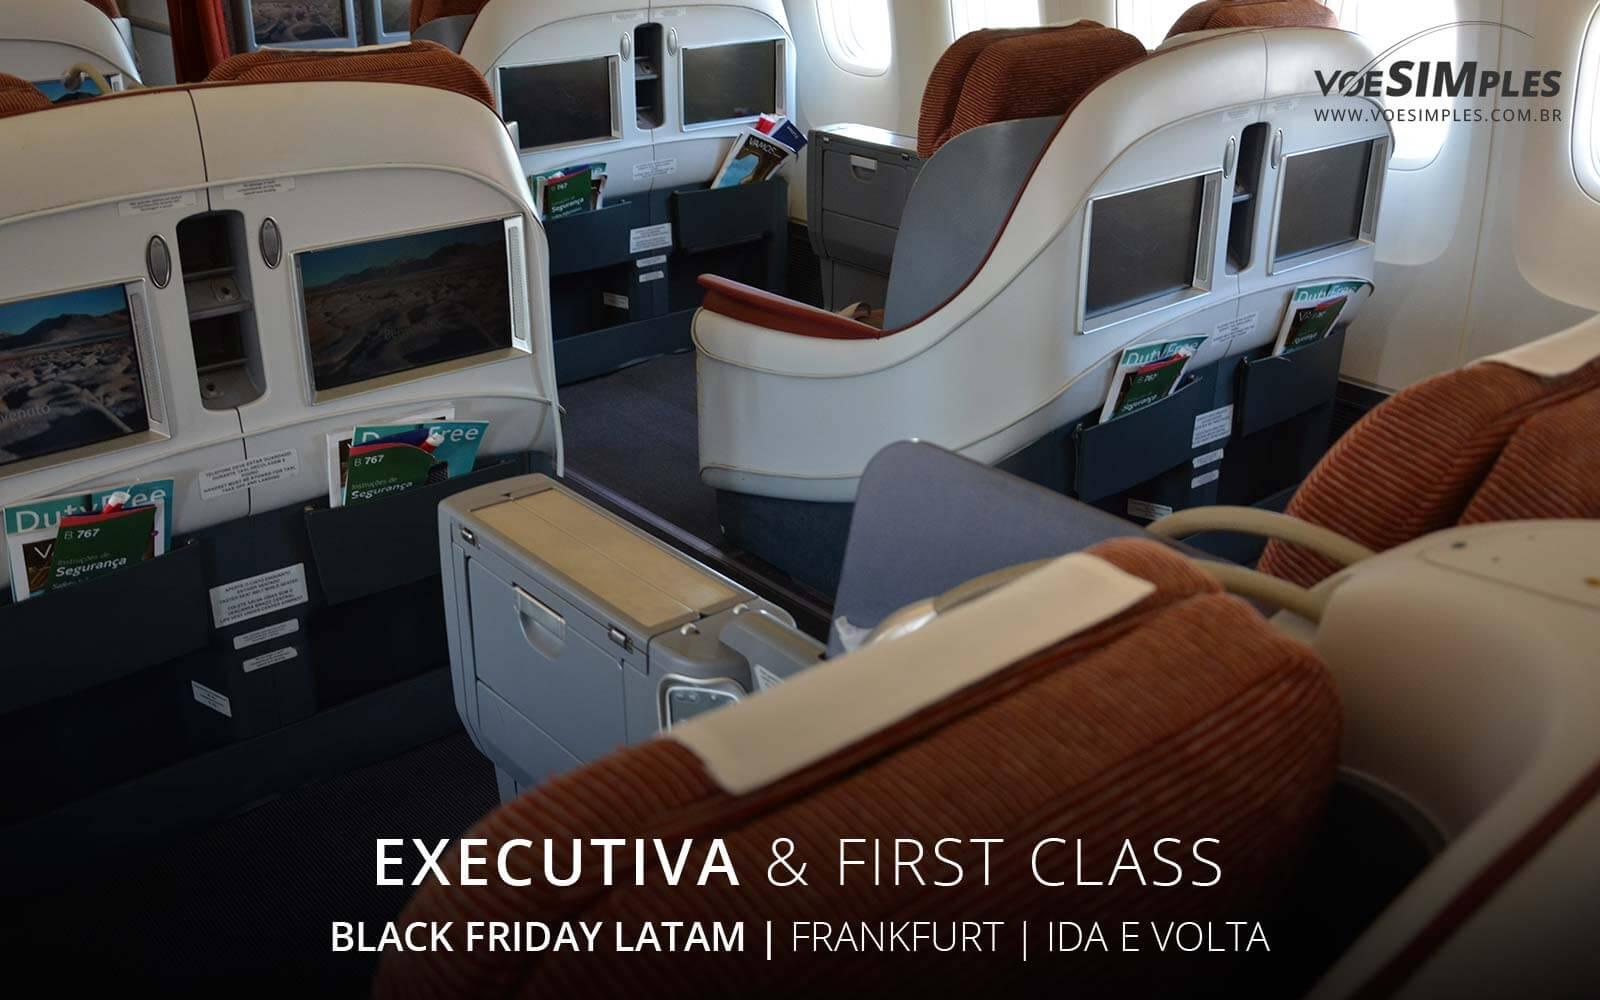 Black Friday Frankfurt 2017 Passagem Aérea Executiva Latam Black Friday Para